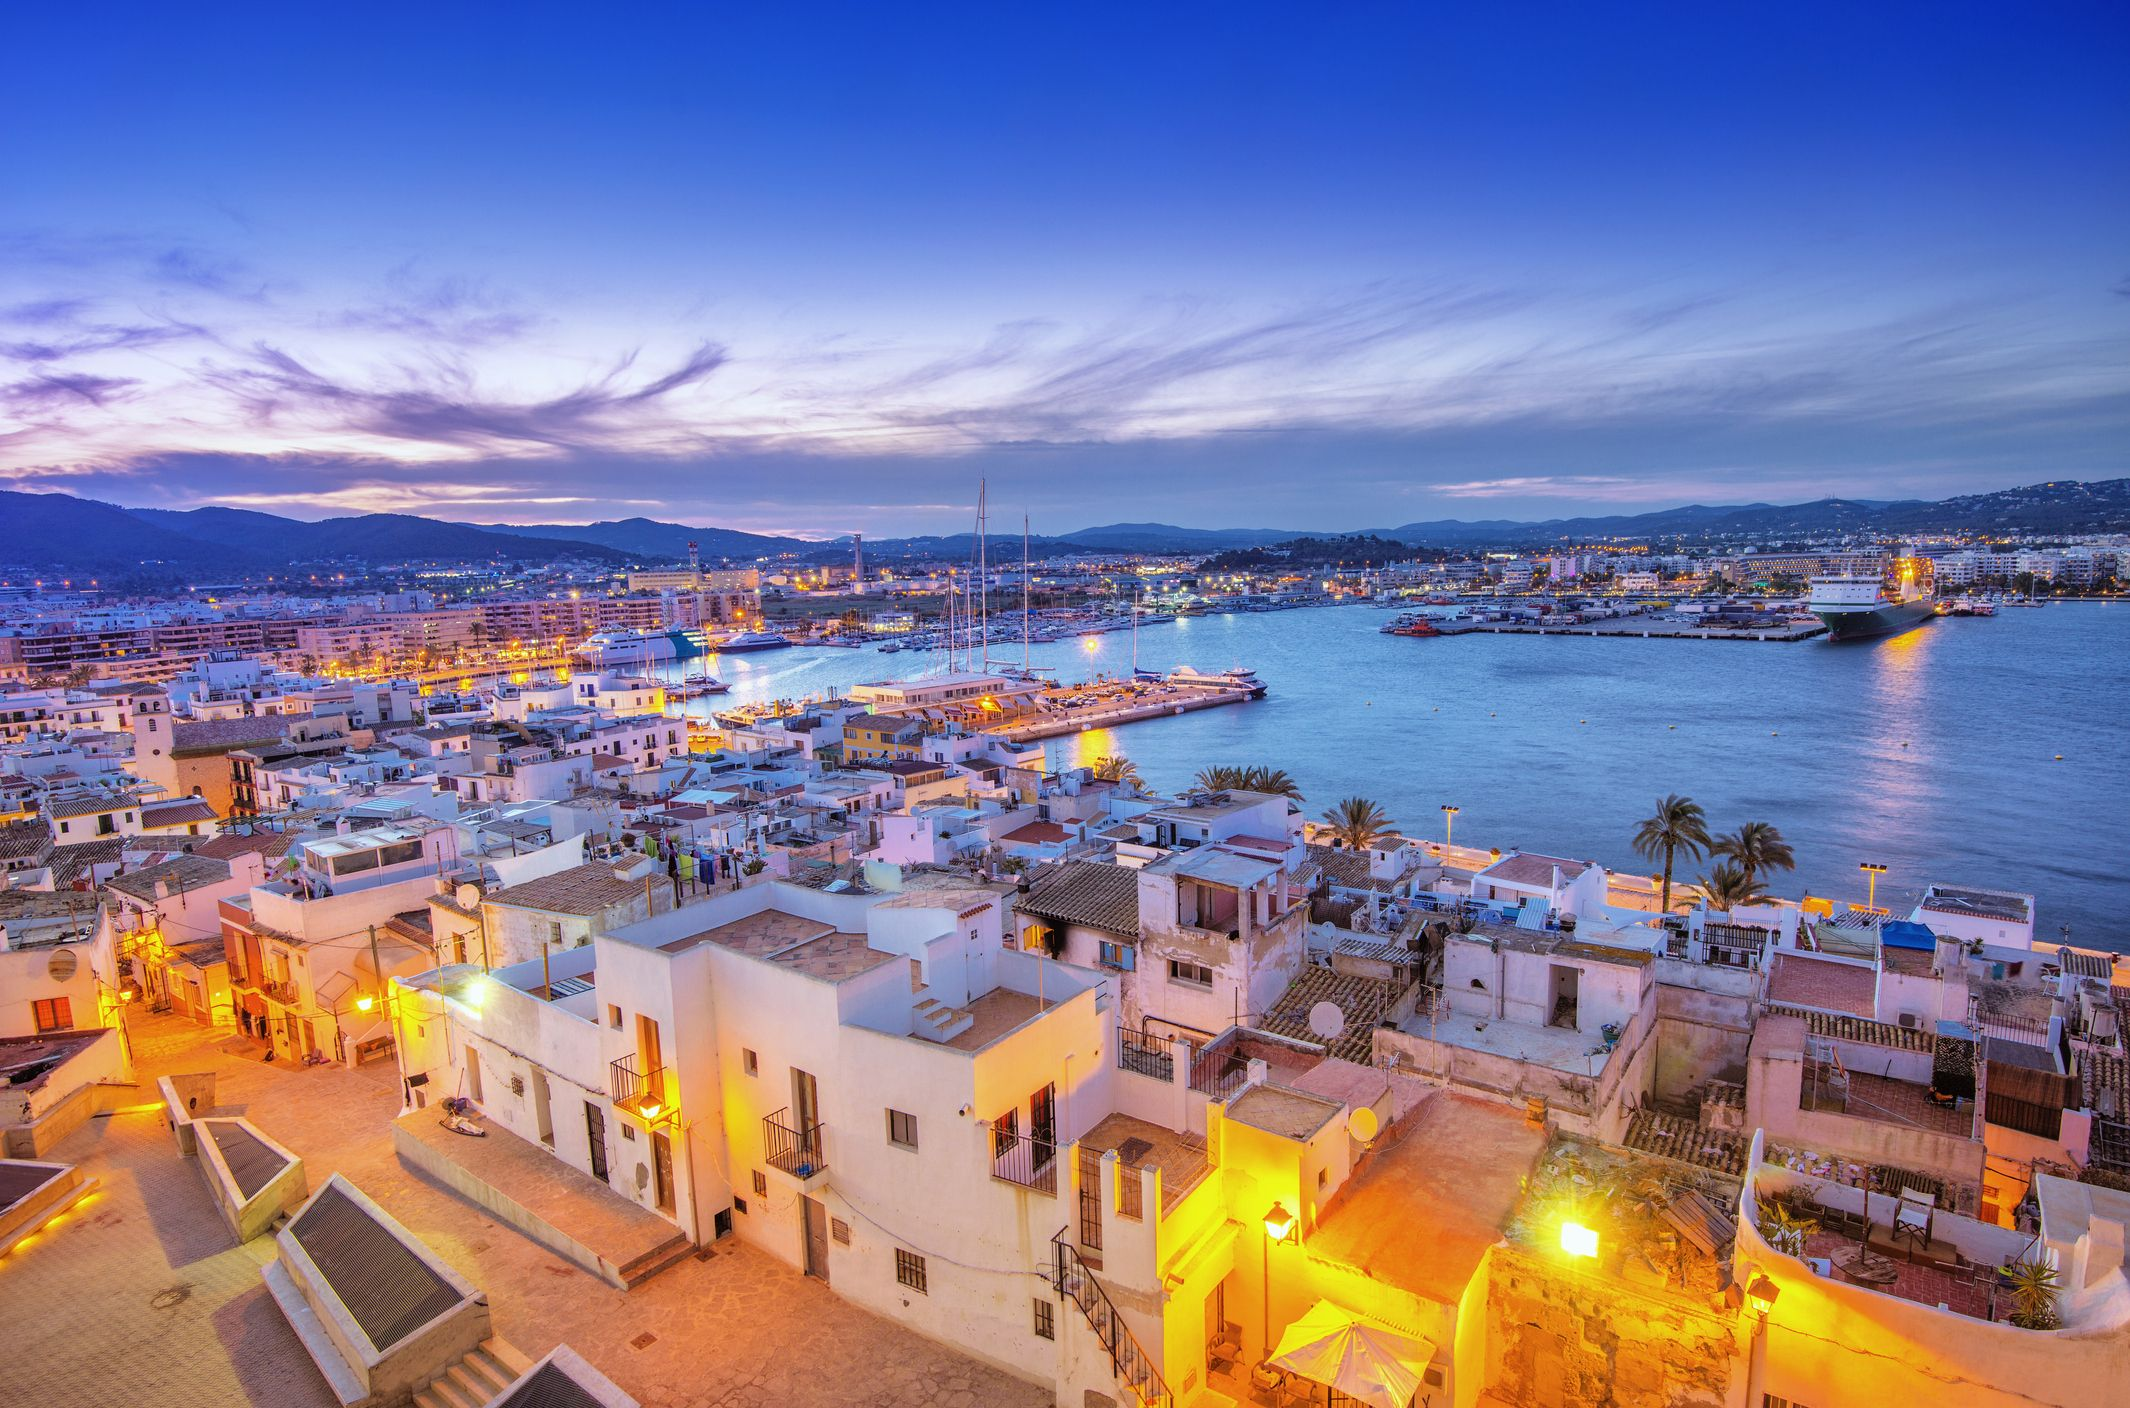 A British Couple Booked an $11,800 Airbnb in Ibiza That Ended Up Not Existing